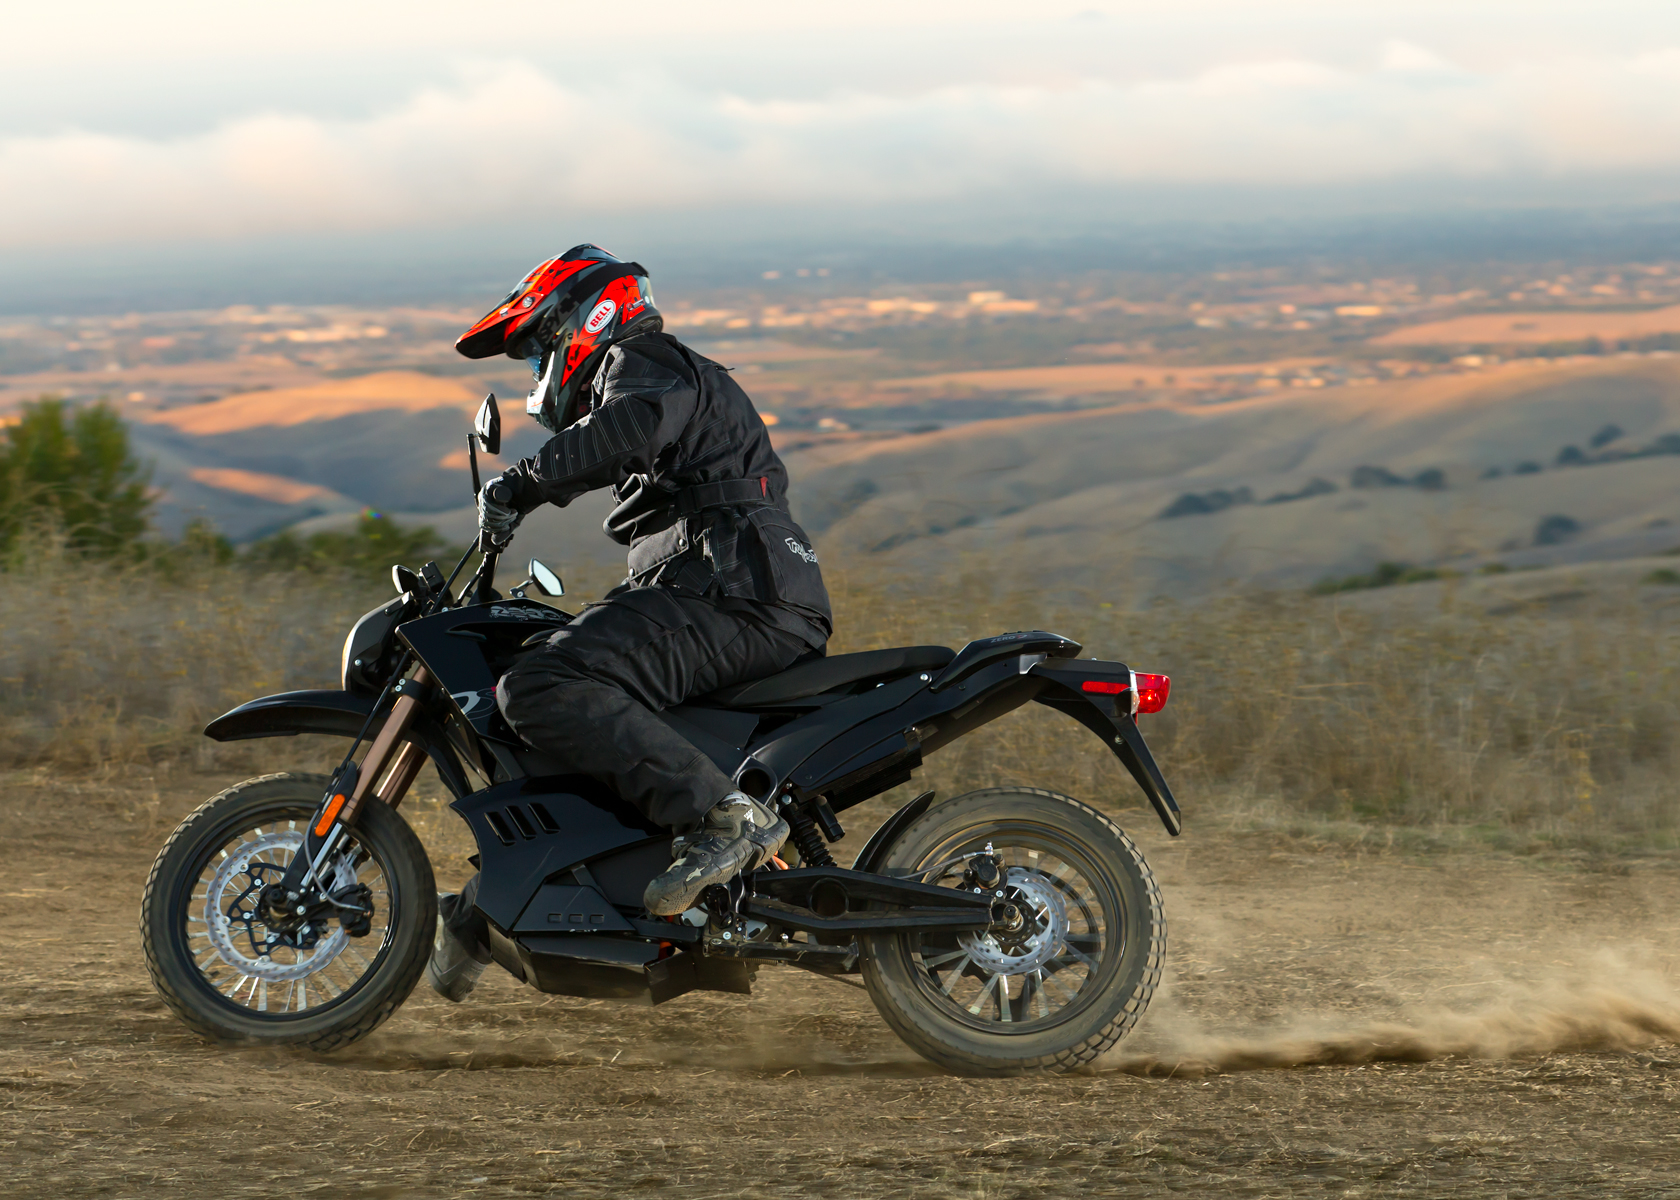 '.2012 Zero DS Electric Motorcycle: On a Dirt Road.'